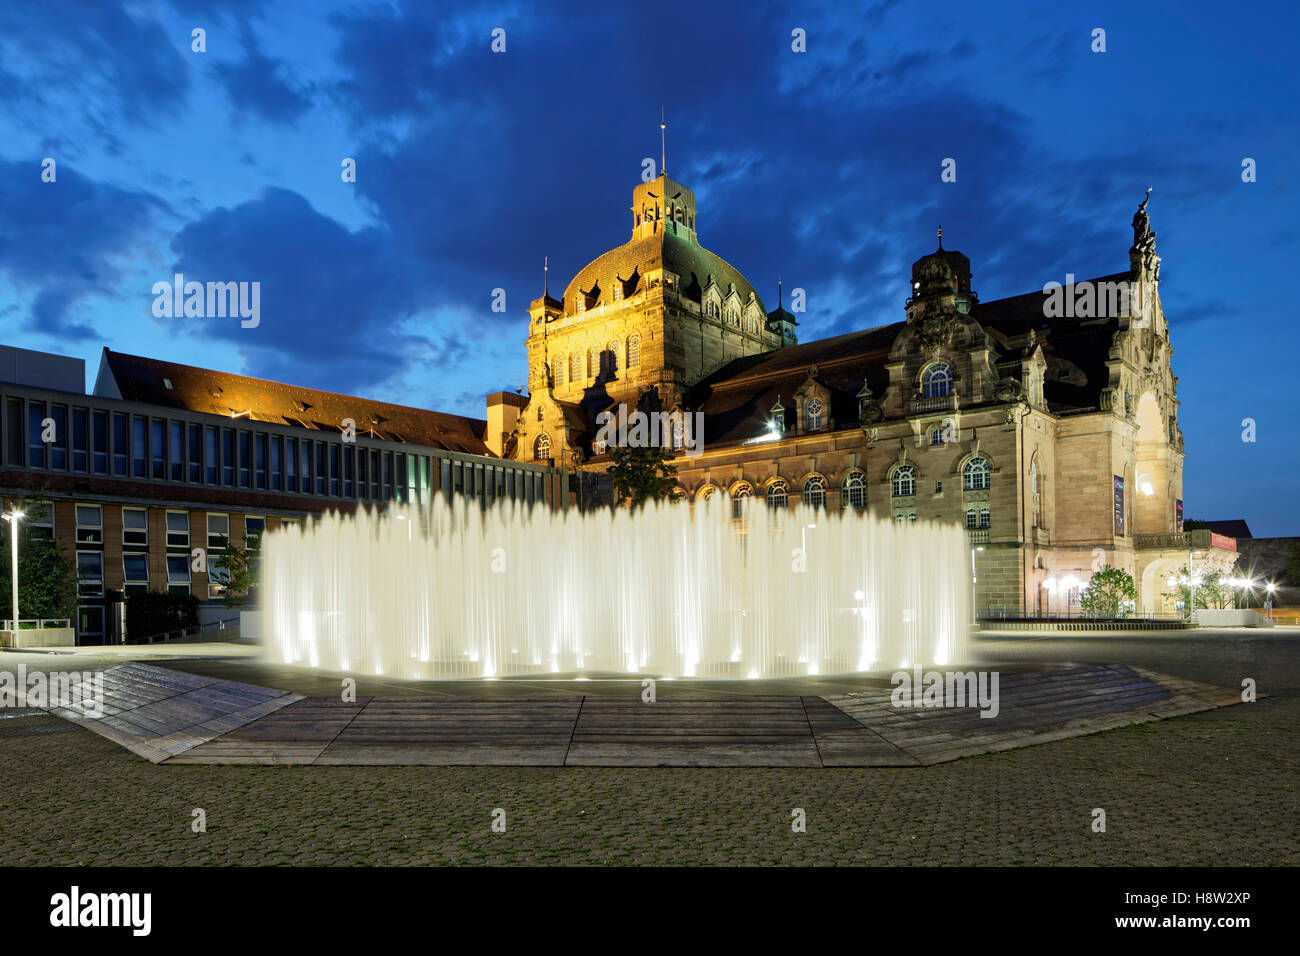 Hexagonal Water Pavilion designed by Jeppe Hein, Opera House, State Theatre, Nuremberg, Middle Franconia, Franconia, - Stock Image